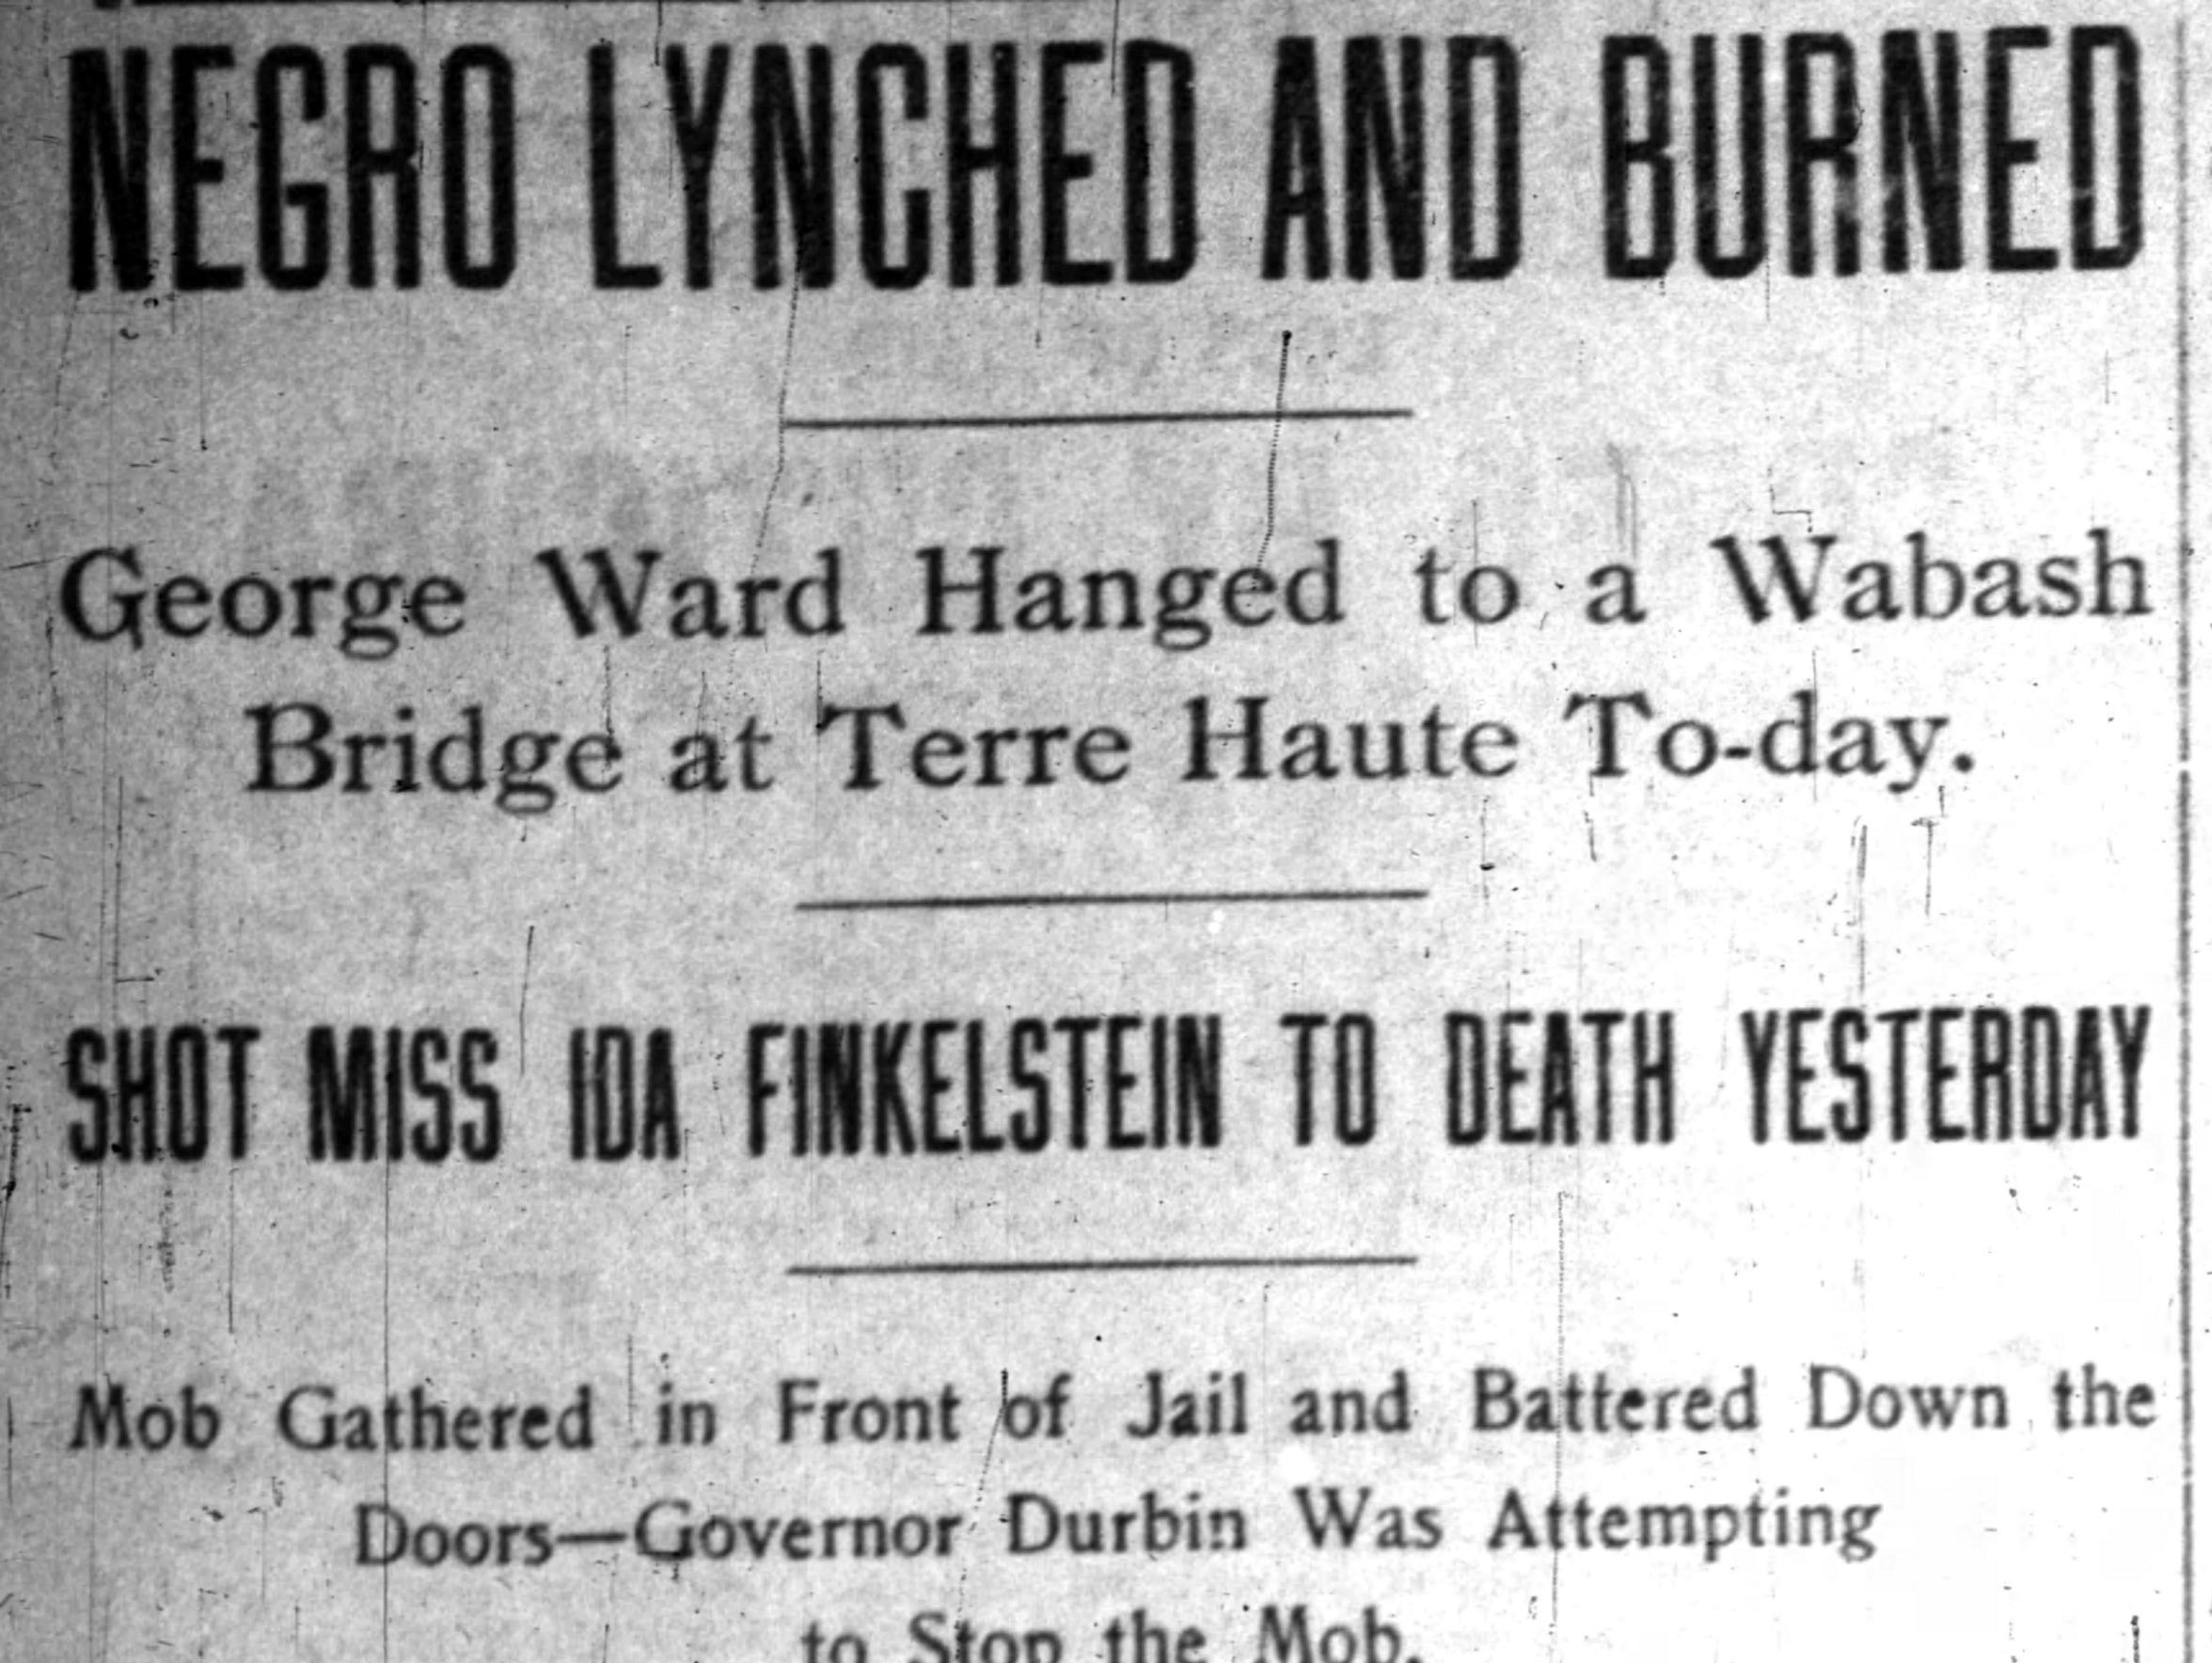 George Ward was hanged from a bridge over the Wabash